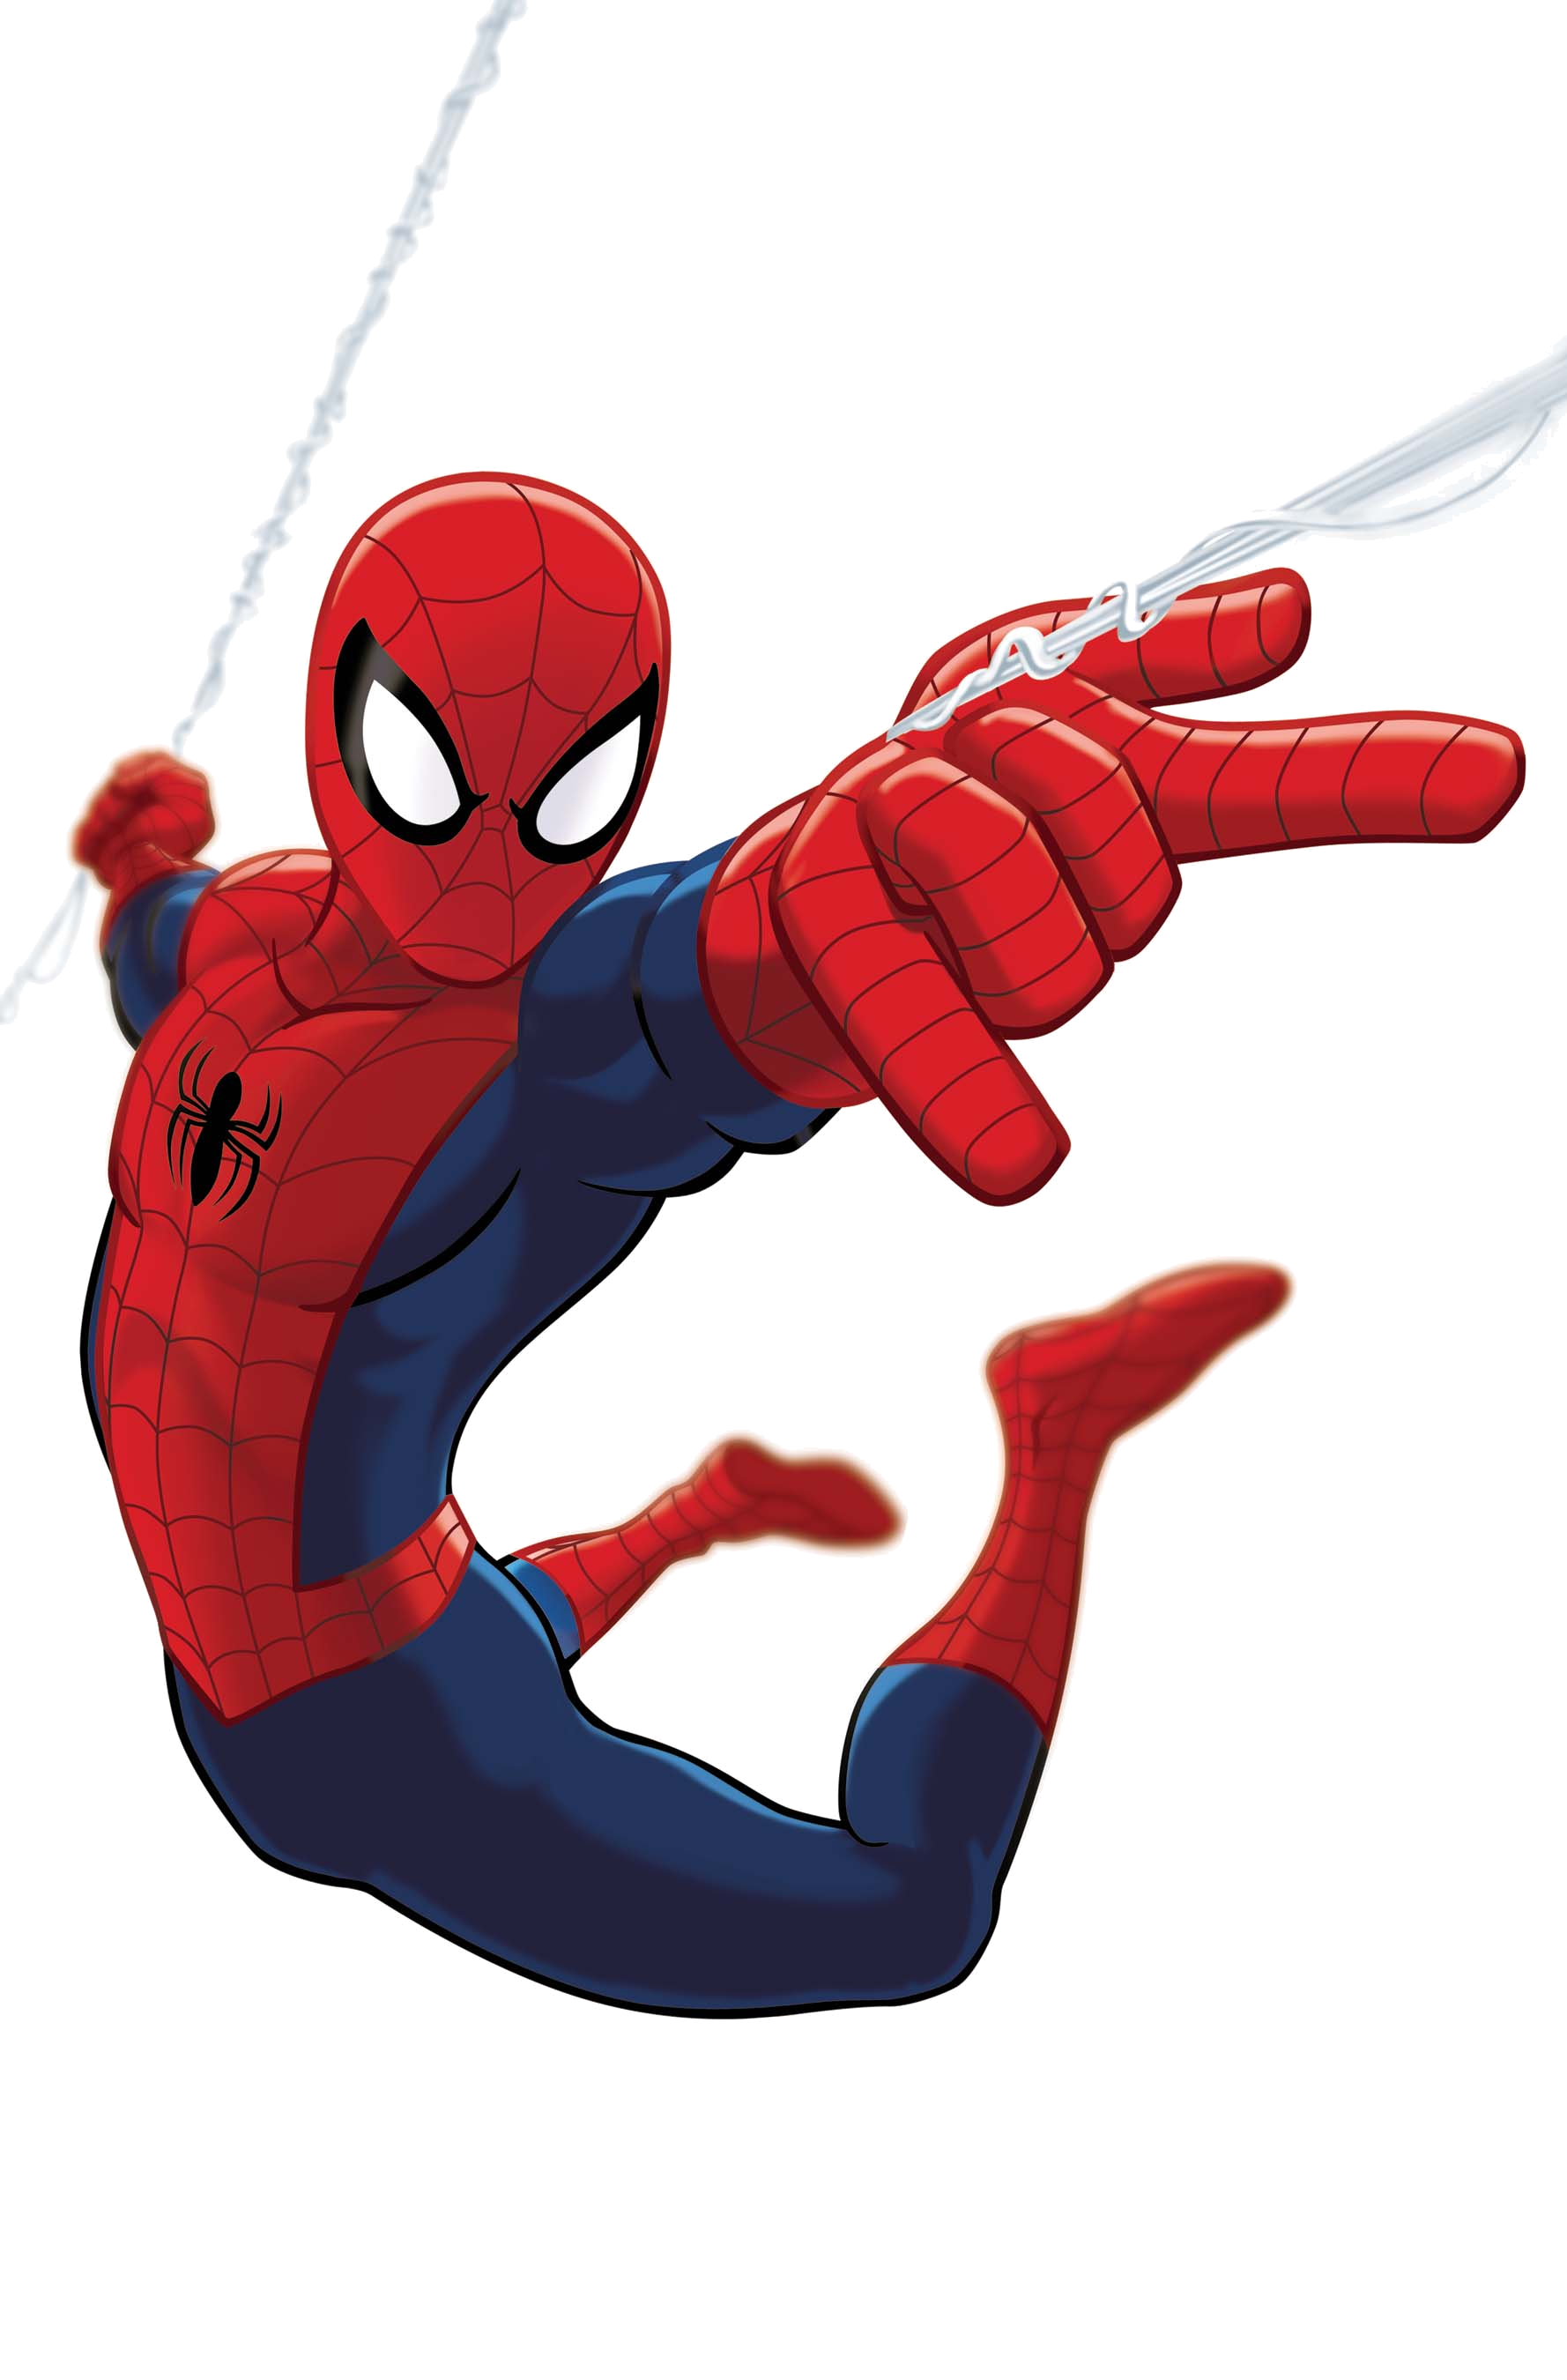 Ultimate spider man disney xd characters - photo#24